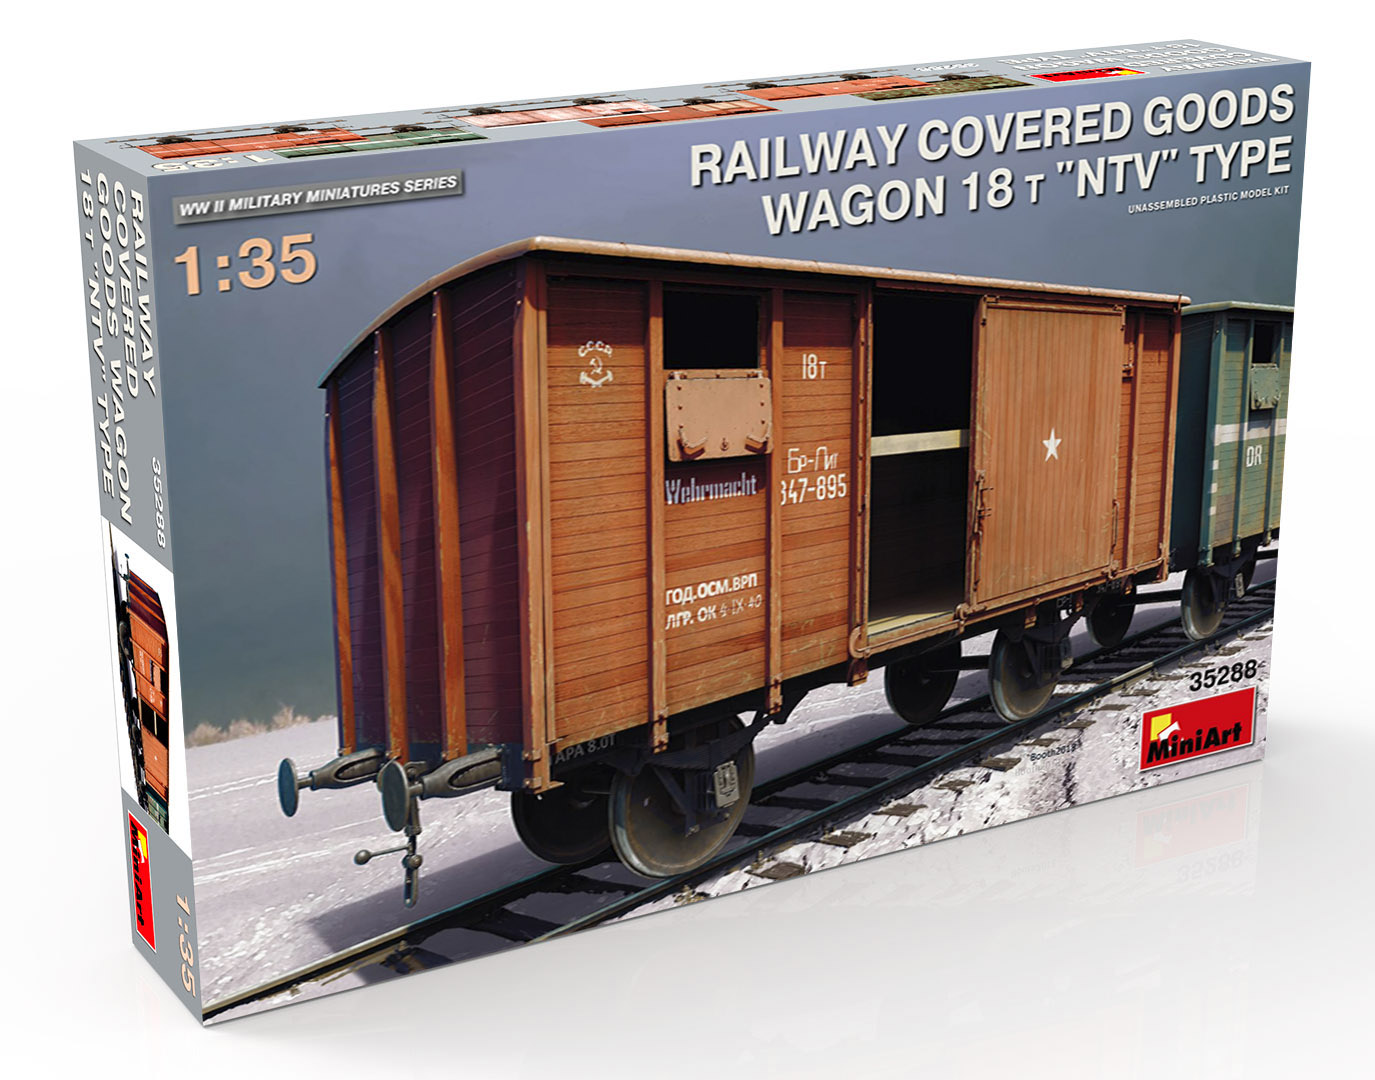 "New Photos of Kit: 35288 RAILWAY COVERED GOODS WAGON 18t ""NTV"" TYPE"